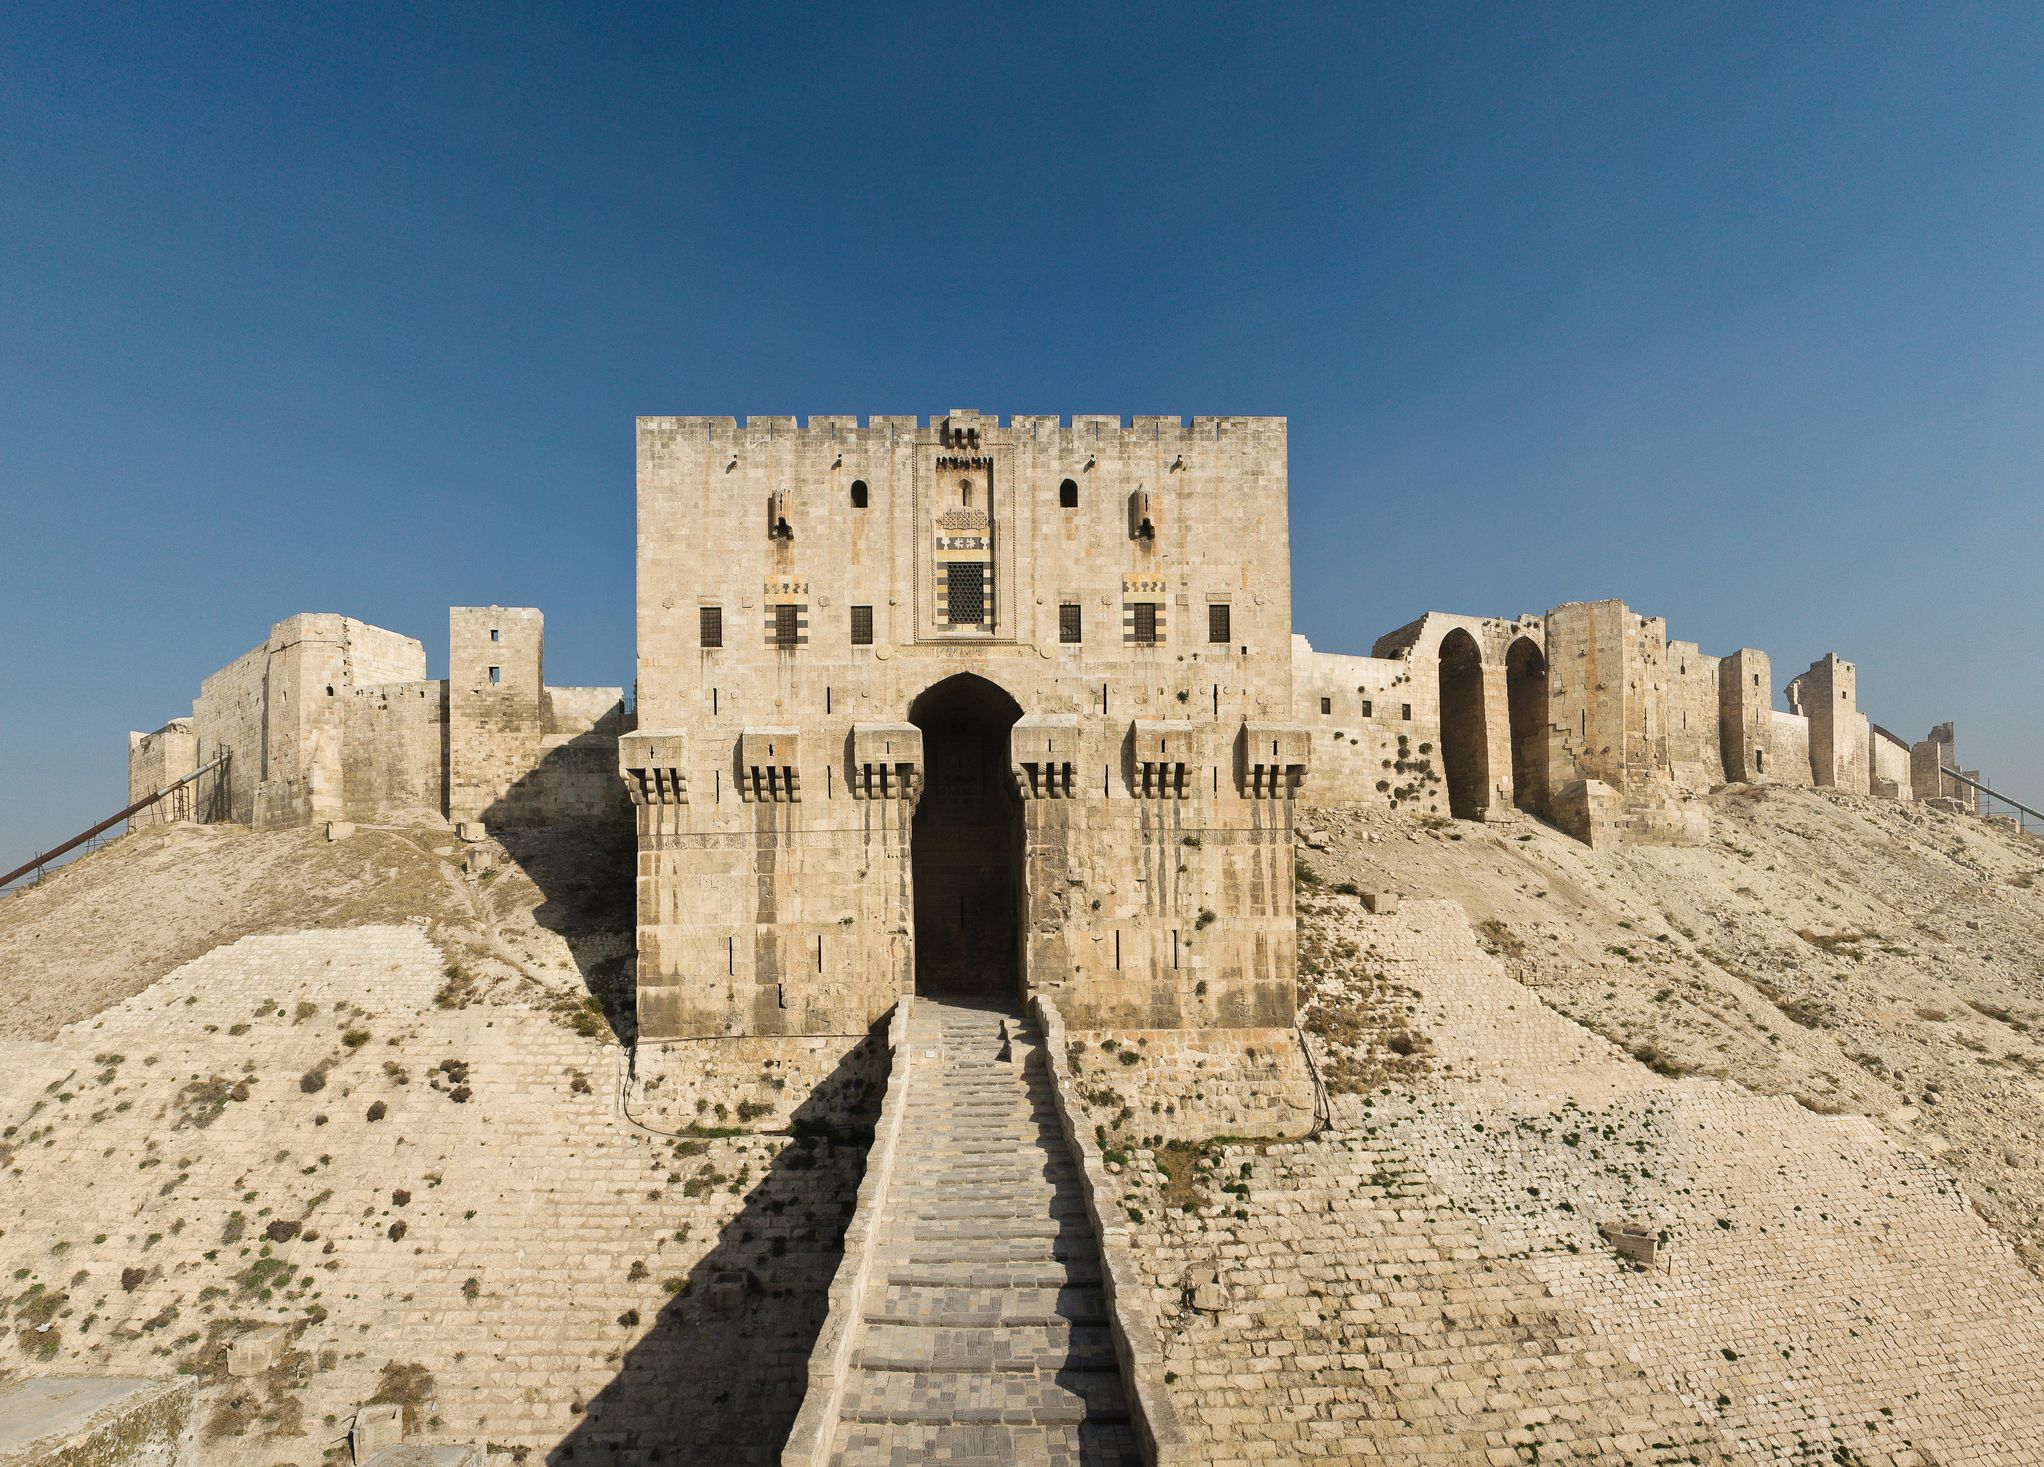 The inner gate of the Citadel in Aleppo before it was destroyed in the civil war (Thinkstock/PA)